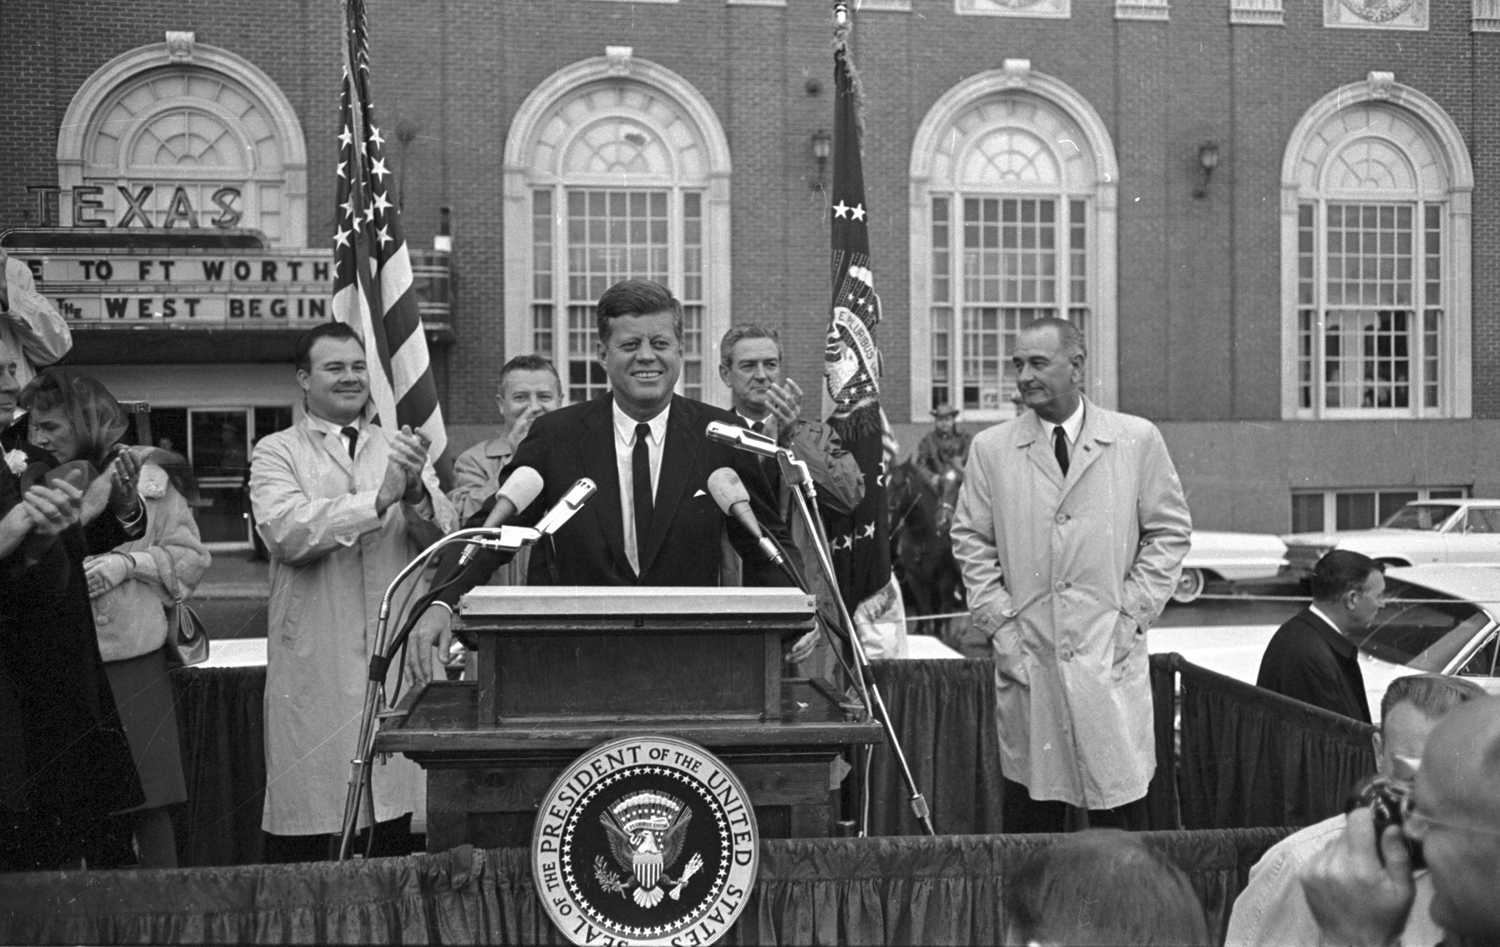 John F. Kennedy speaks to crowd in front of Hotel Texas on the morning of November 22, 1963. (UTA Special Collections/Star-Telegram Collection/TNS)